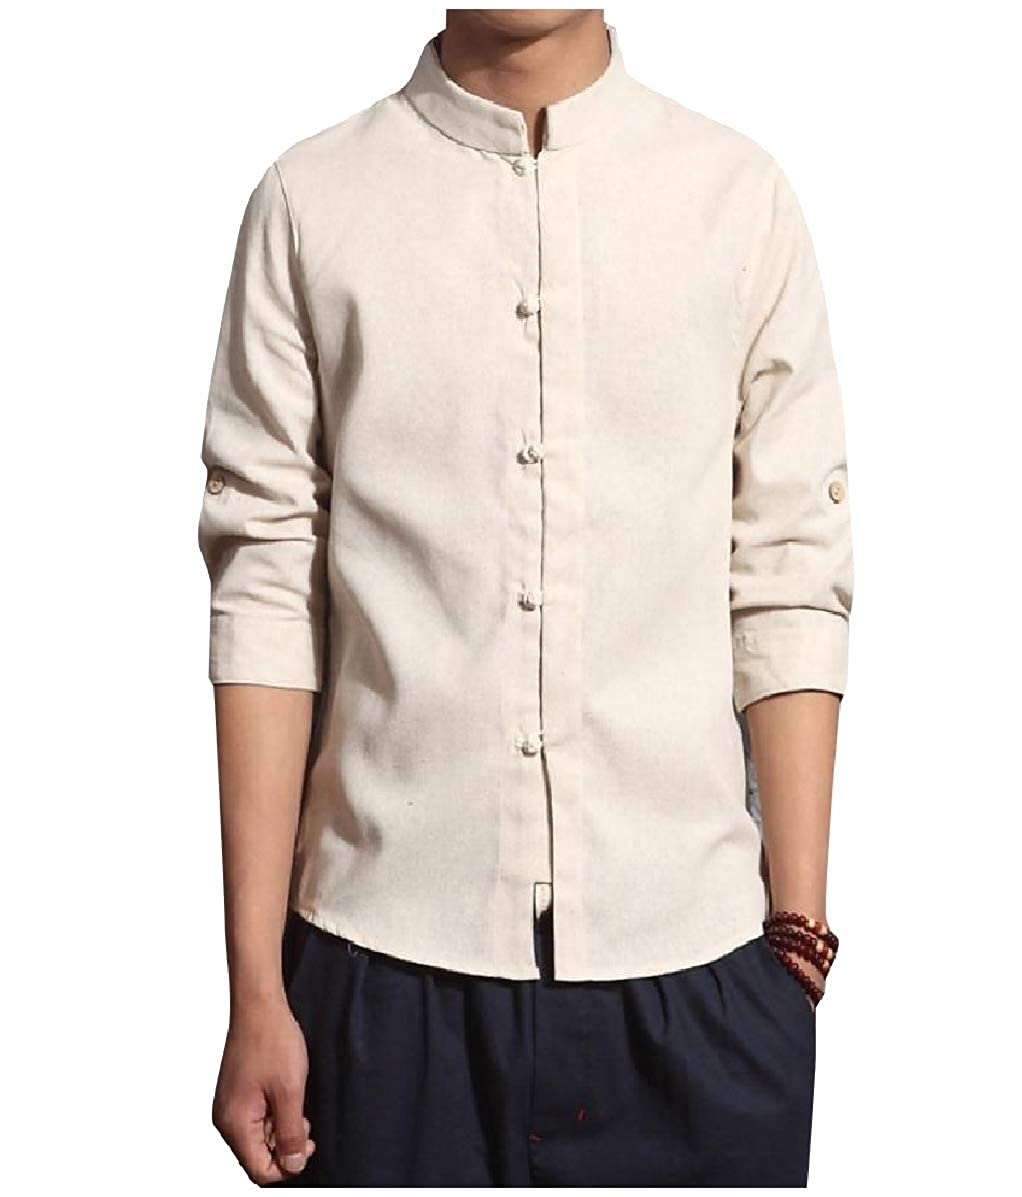 YUNY Mens Chinese Style Linen 3//4 Sleeve Back Cotton Western Shirt Beige M